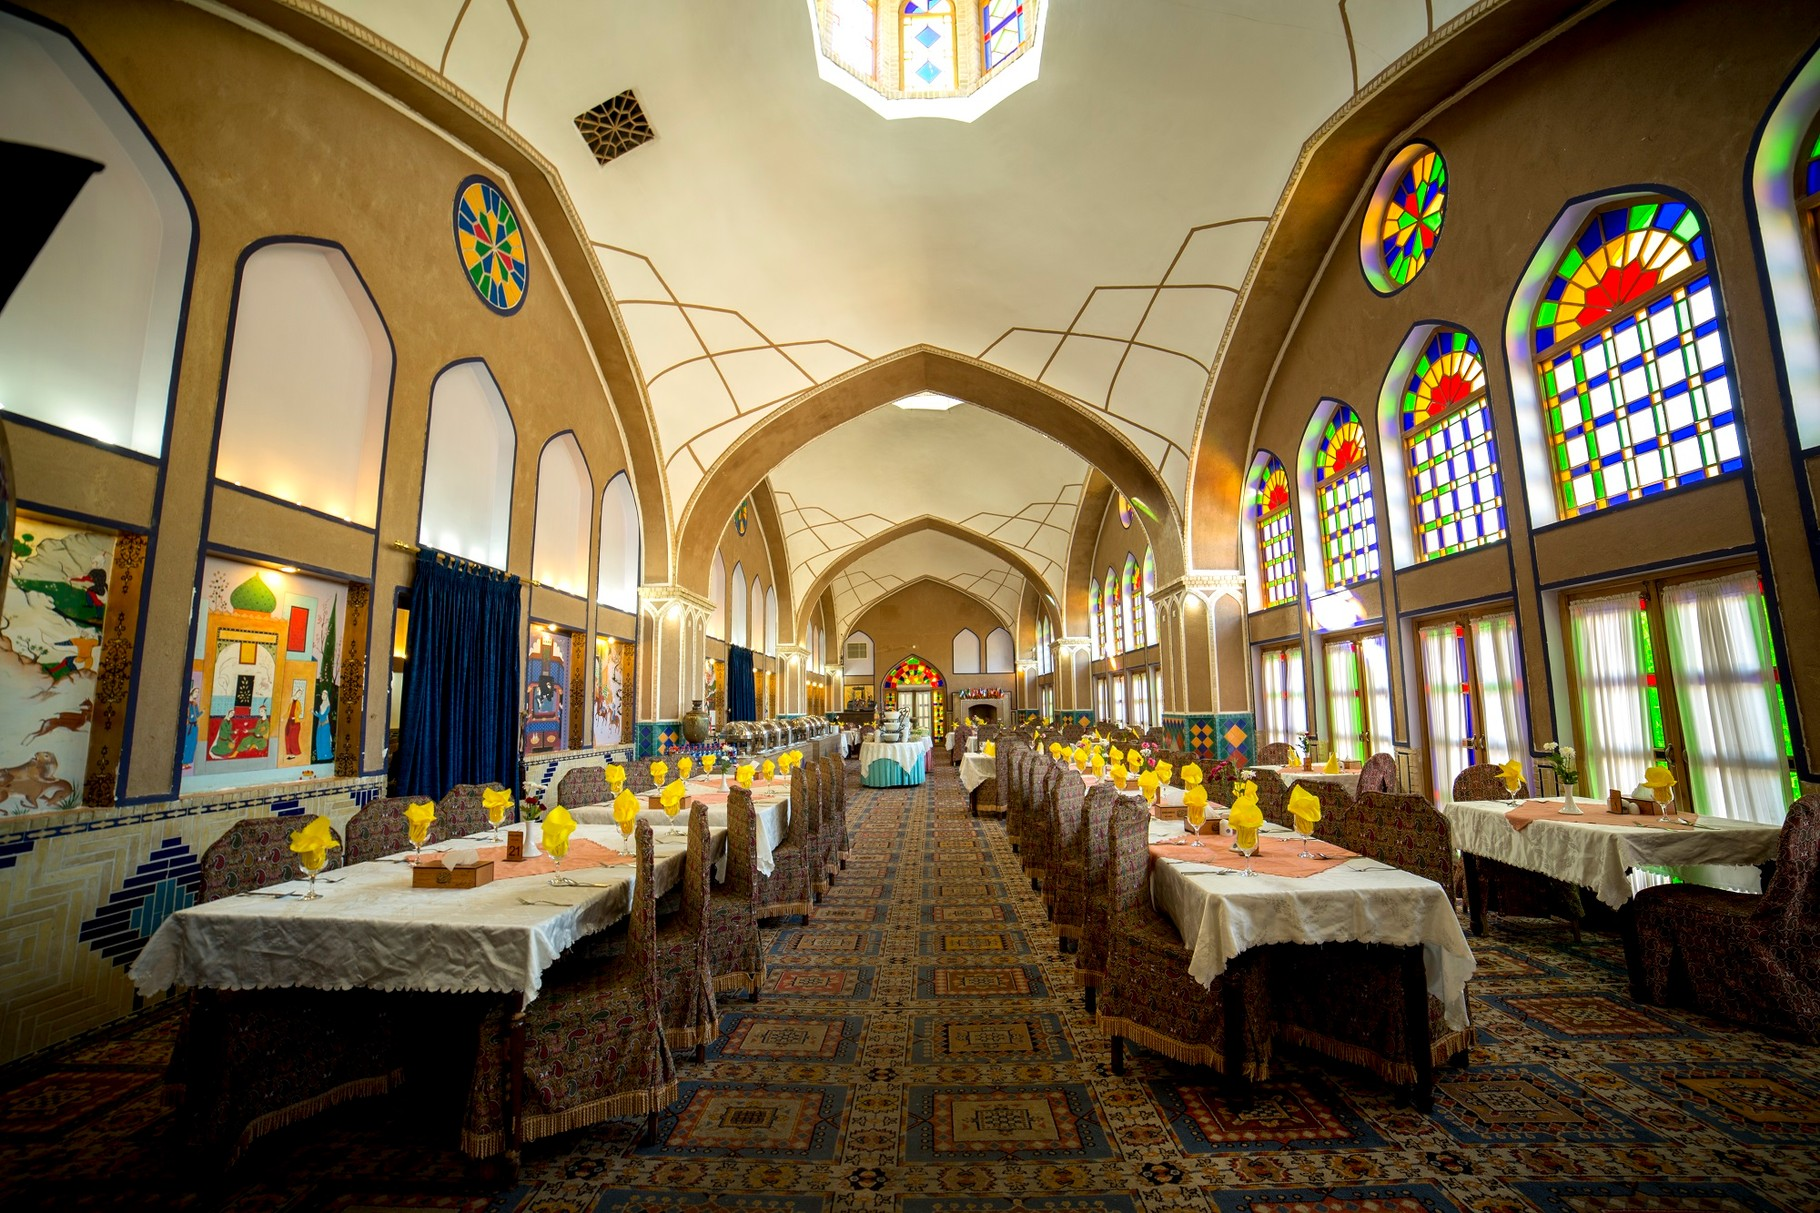 Four Star Hotel Gardenmoshir in Yazd